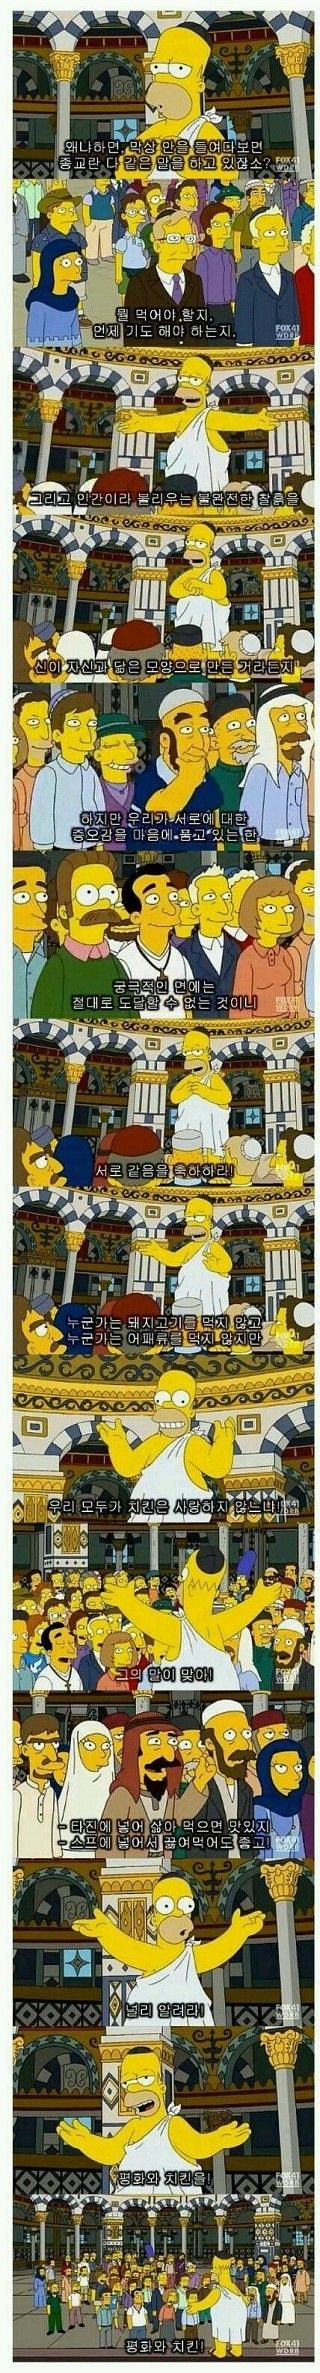 파일:attachment/닭/Chicken_Simpson.jpg